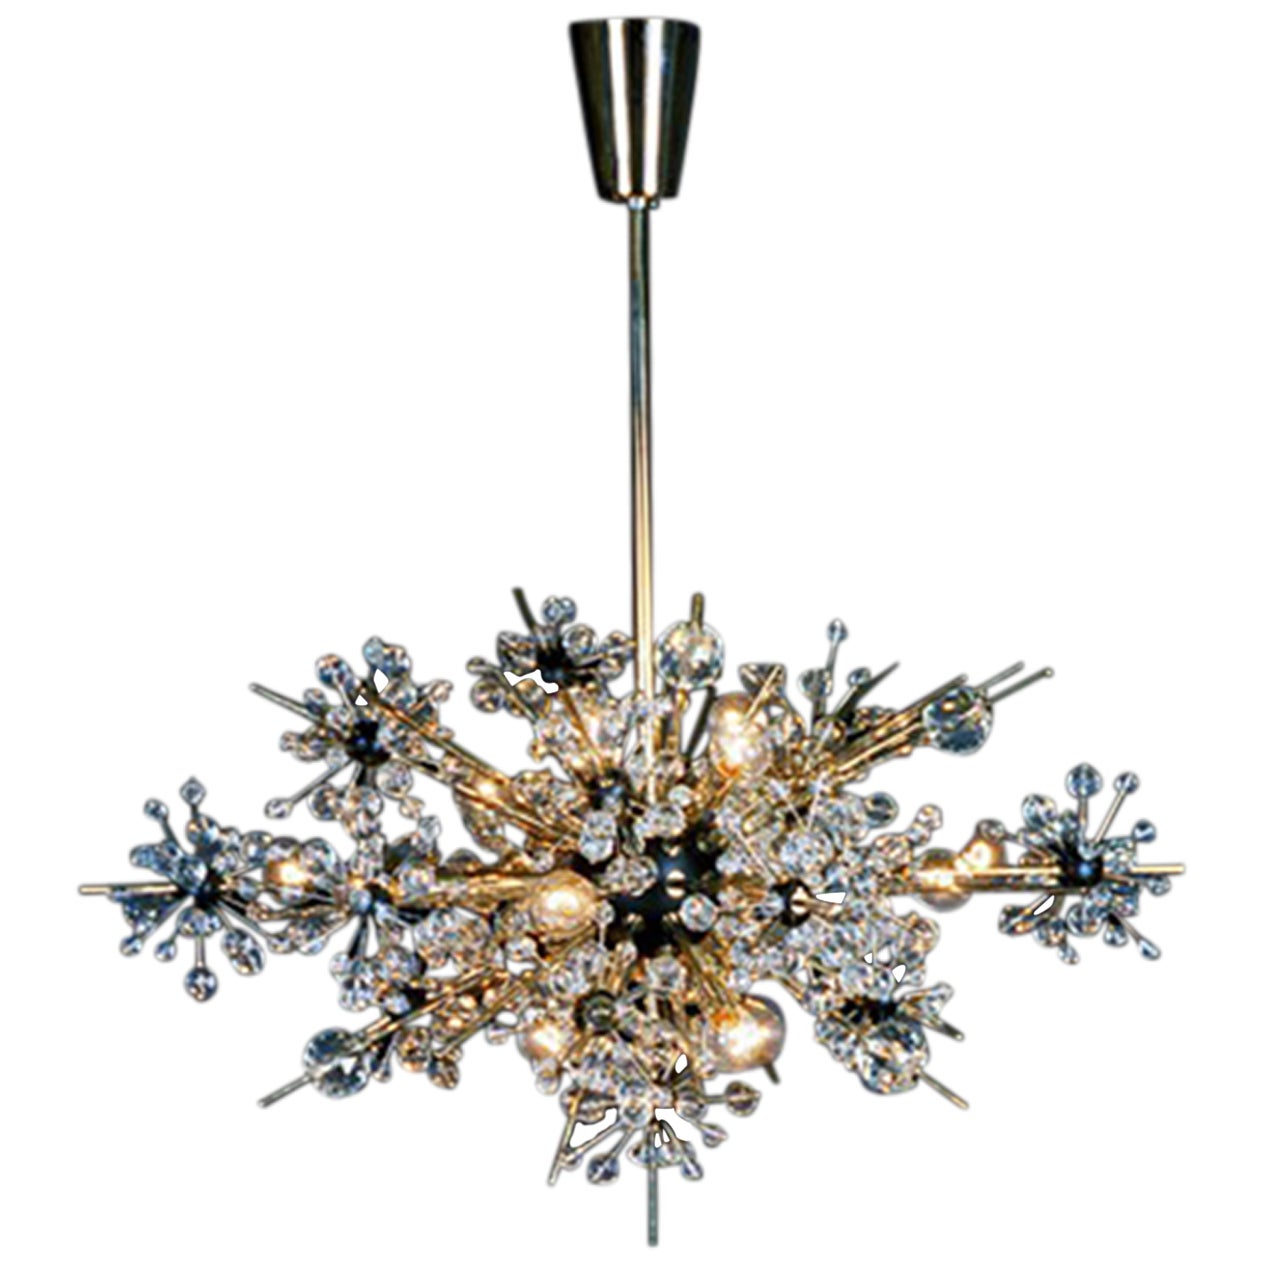 Lighting by Pecaso Contour 16 light Chandelier in 2020